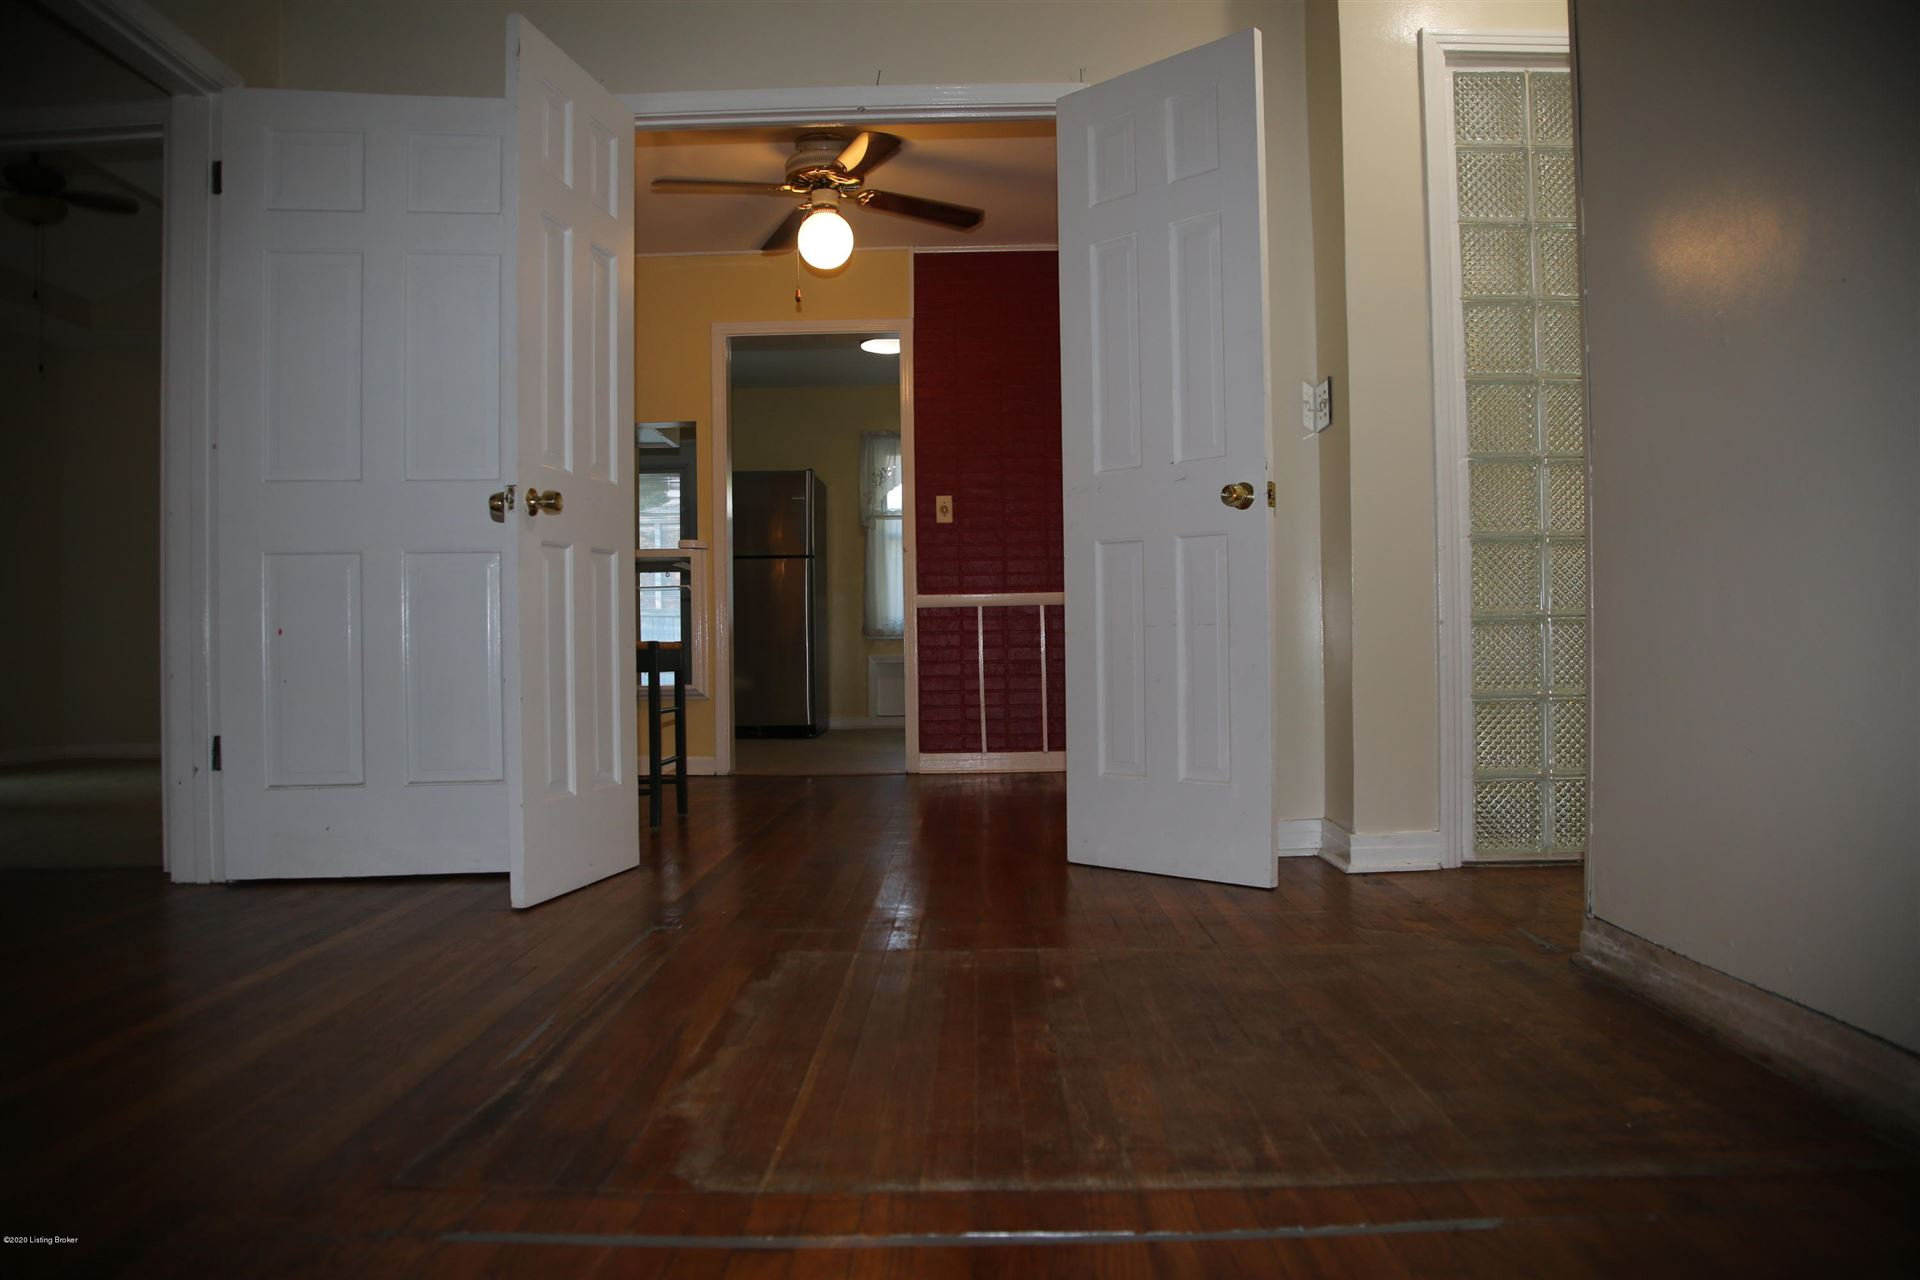 Property Image Of 2503 Proctor Knott Dr In Louisville, Ky